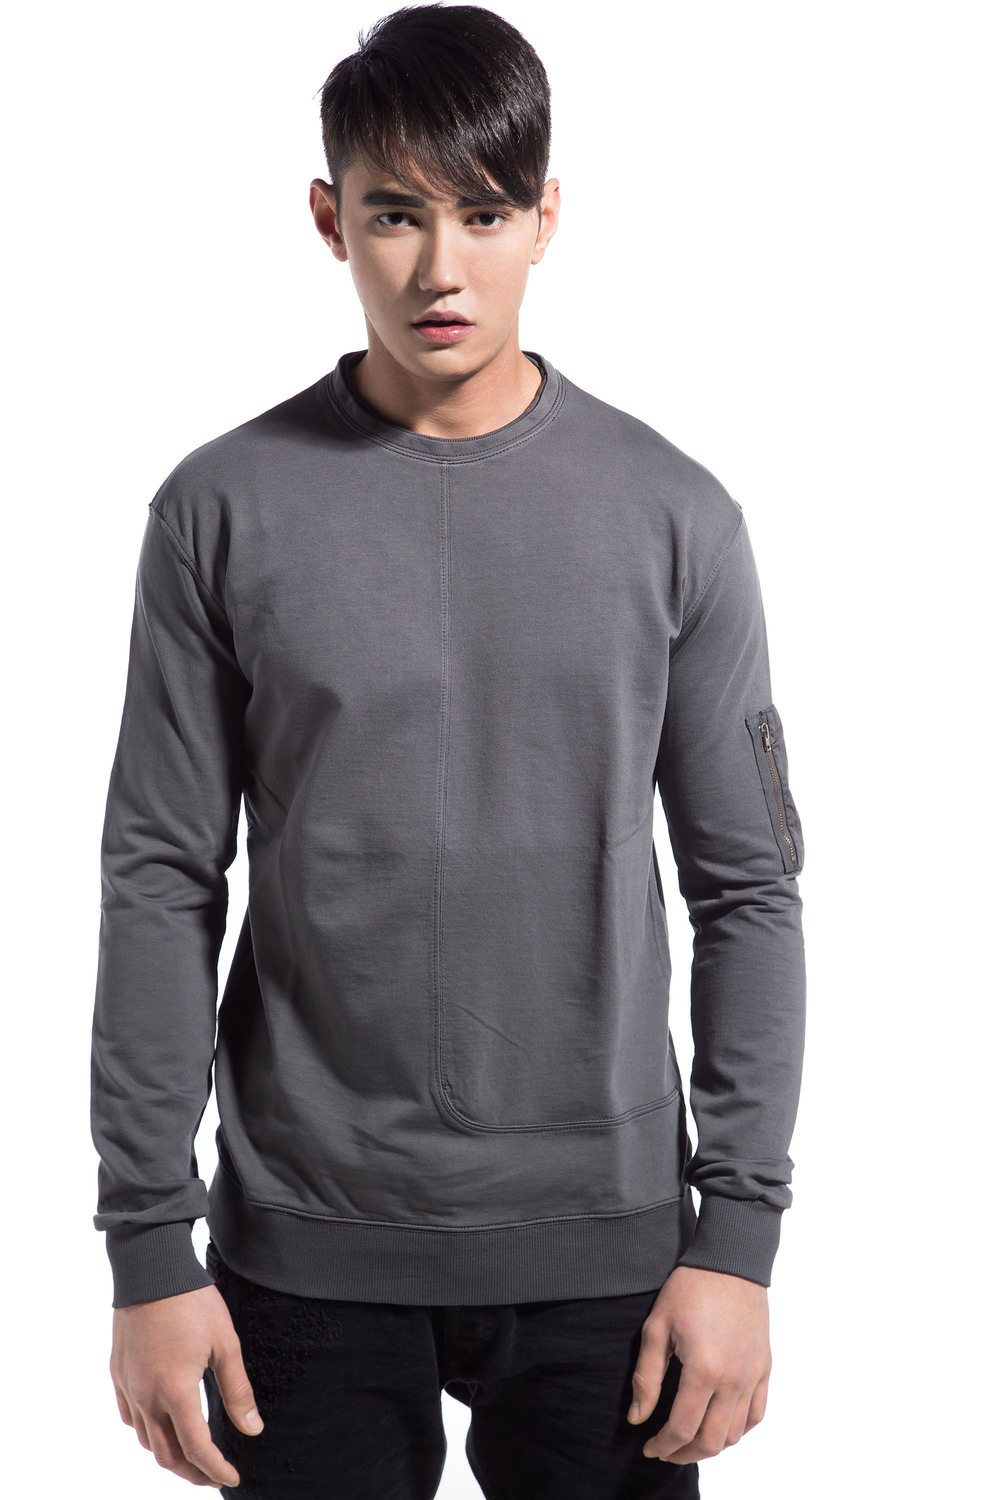 SLEEVE POCKET SWEATSHIRT GREY